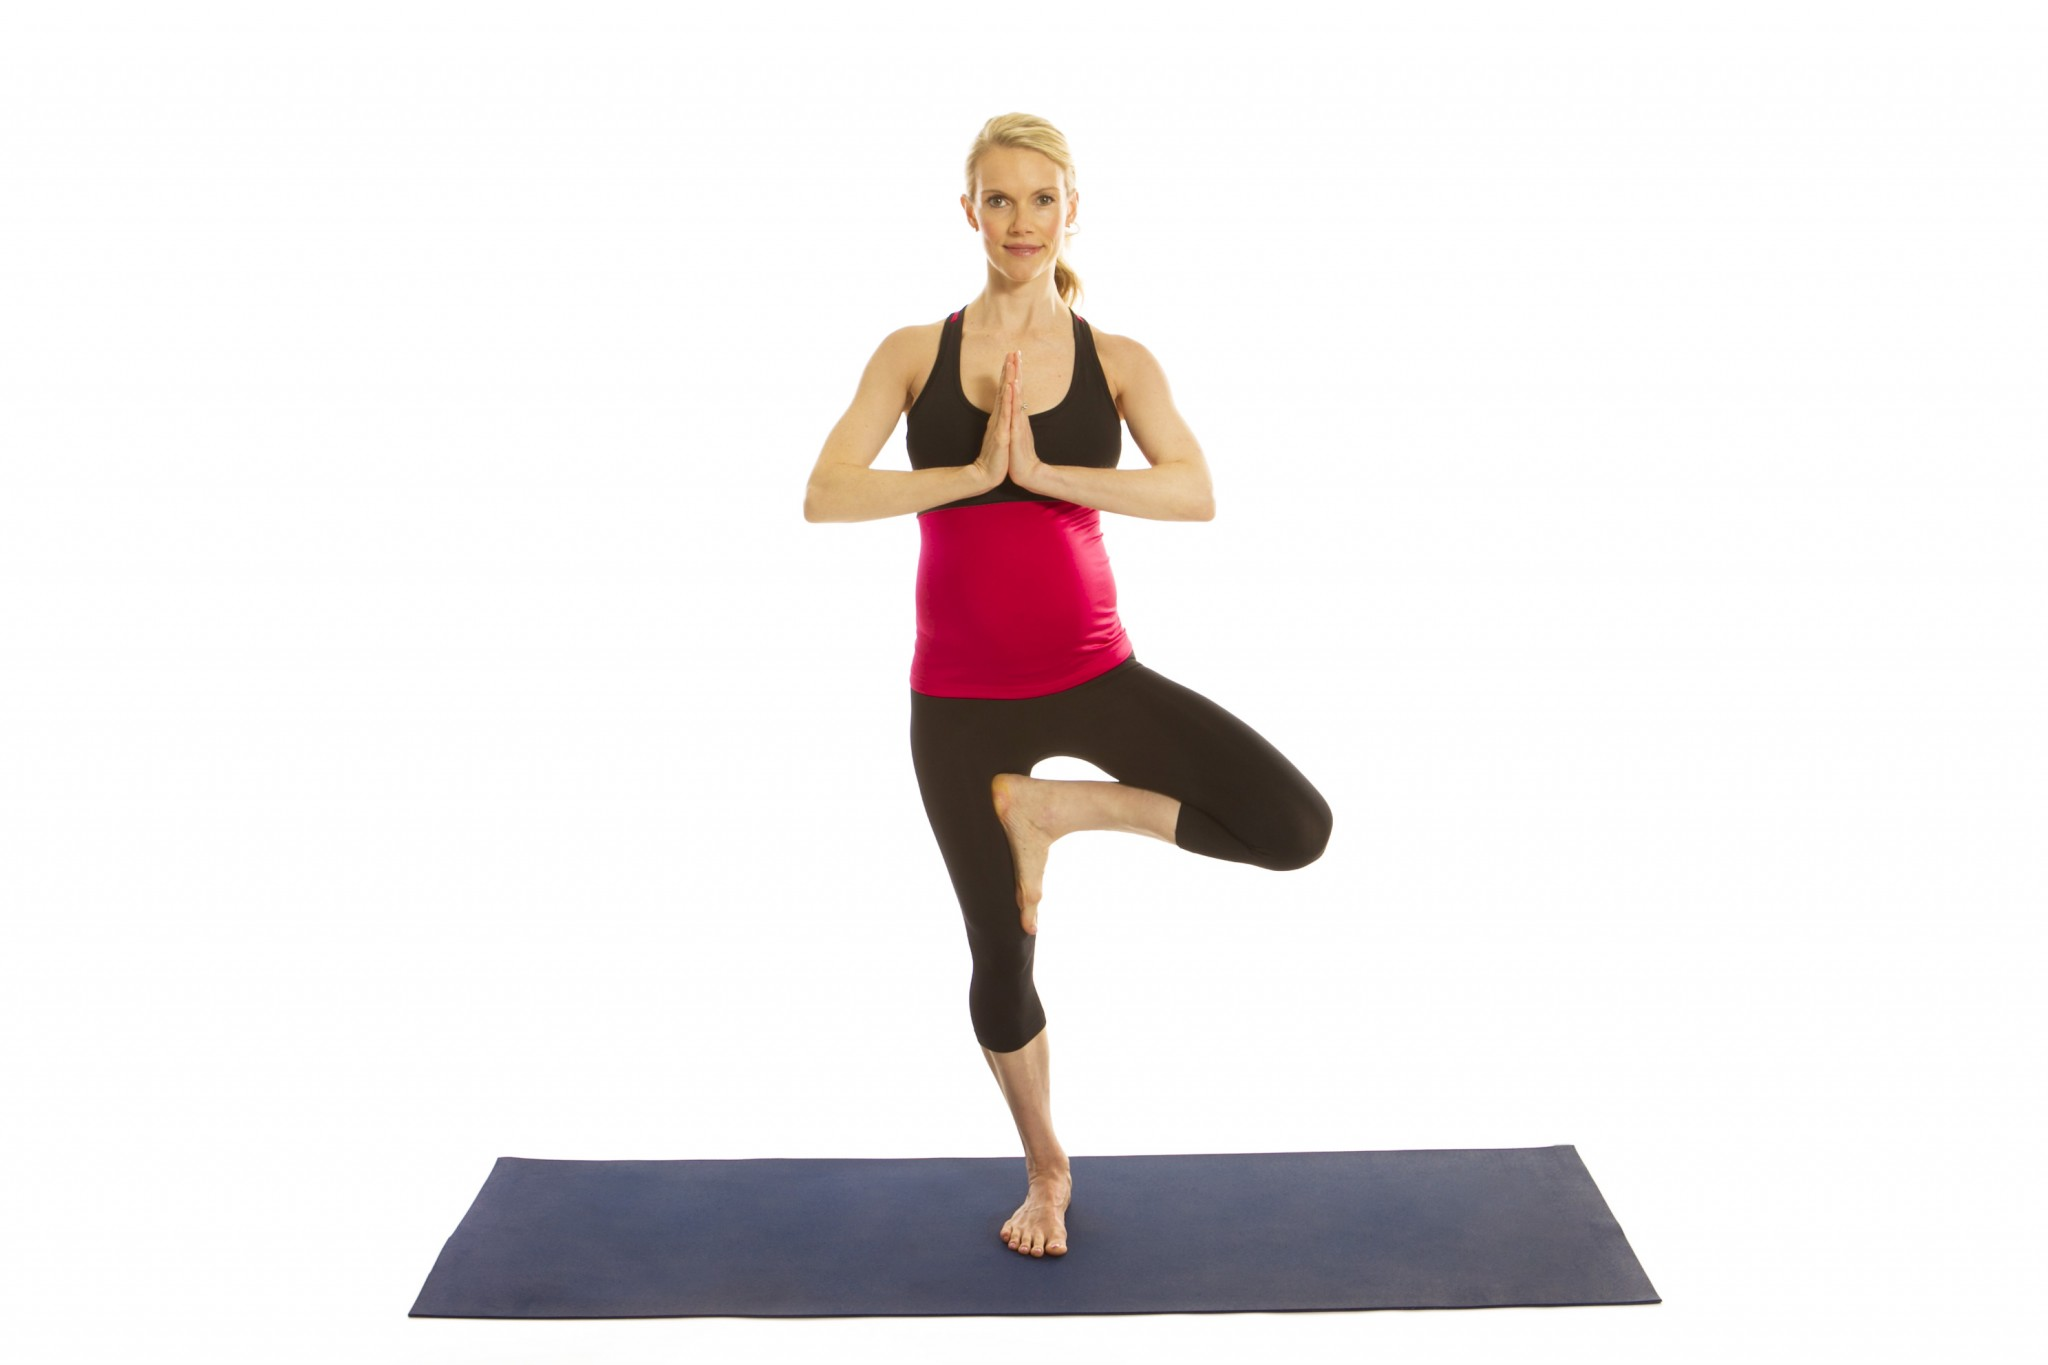 7. The Tree Pose - The Best Yoga Poses for Pregnant Women